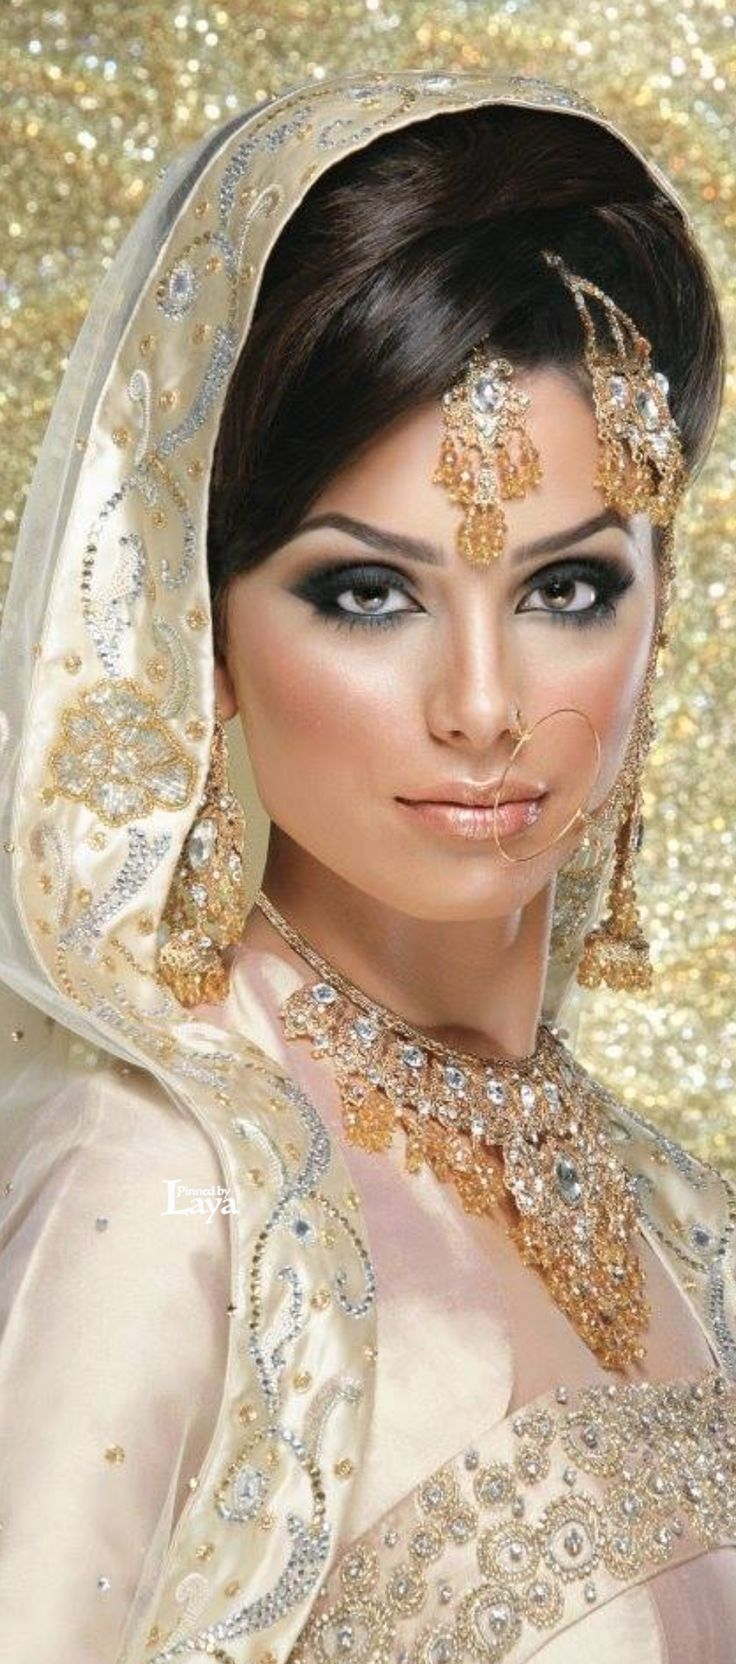 ♔LAYA♔INDIAN BRIDE♔ beautiful bride!!!